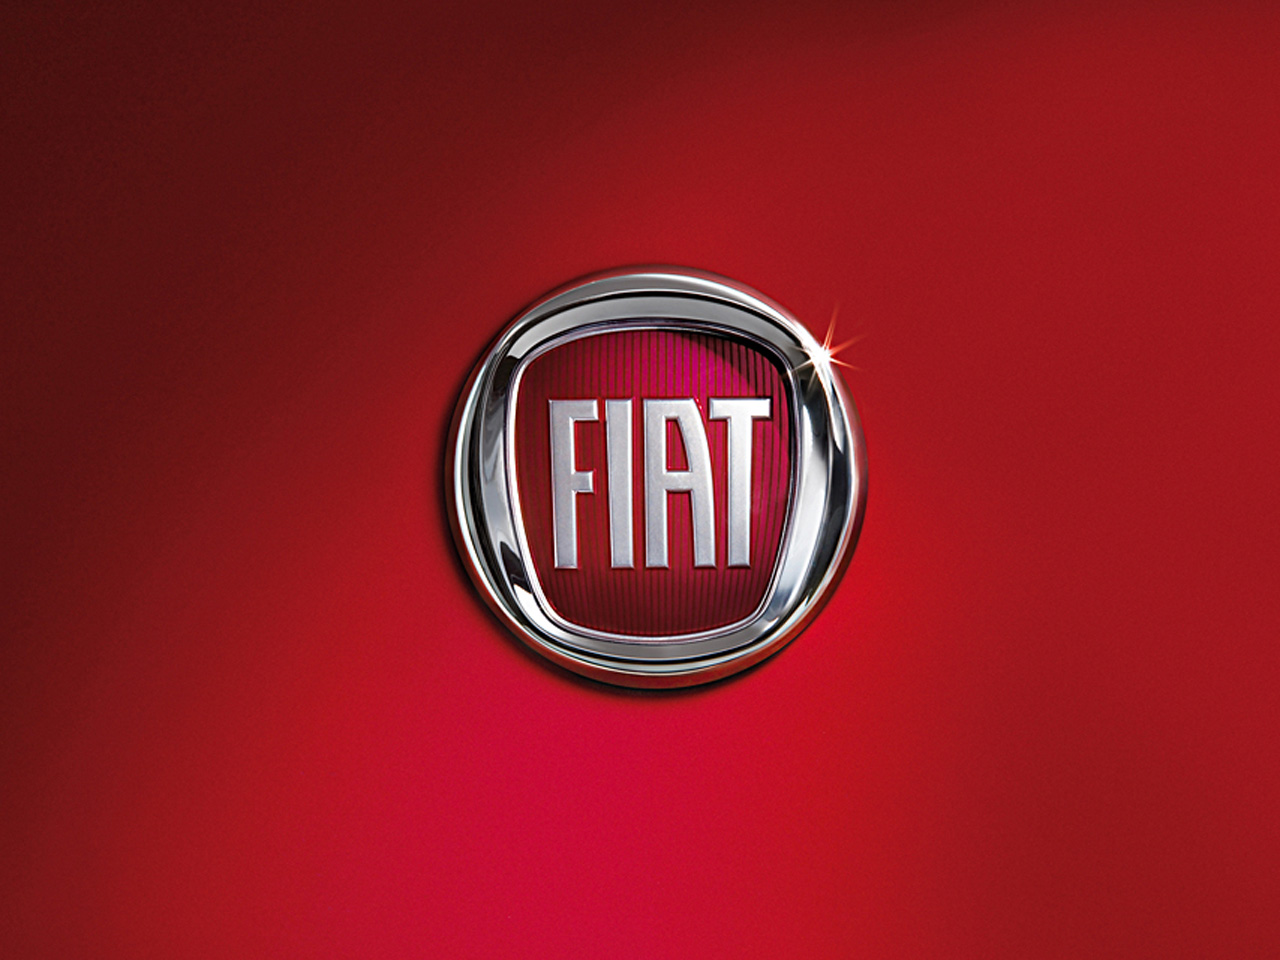 fiat logo free pictures, images fiat logo download free